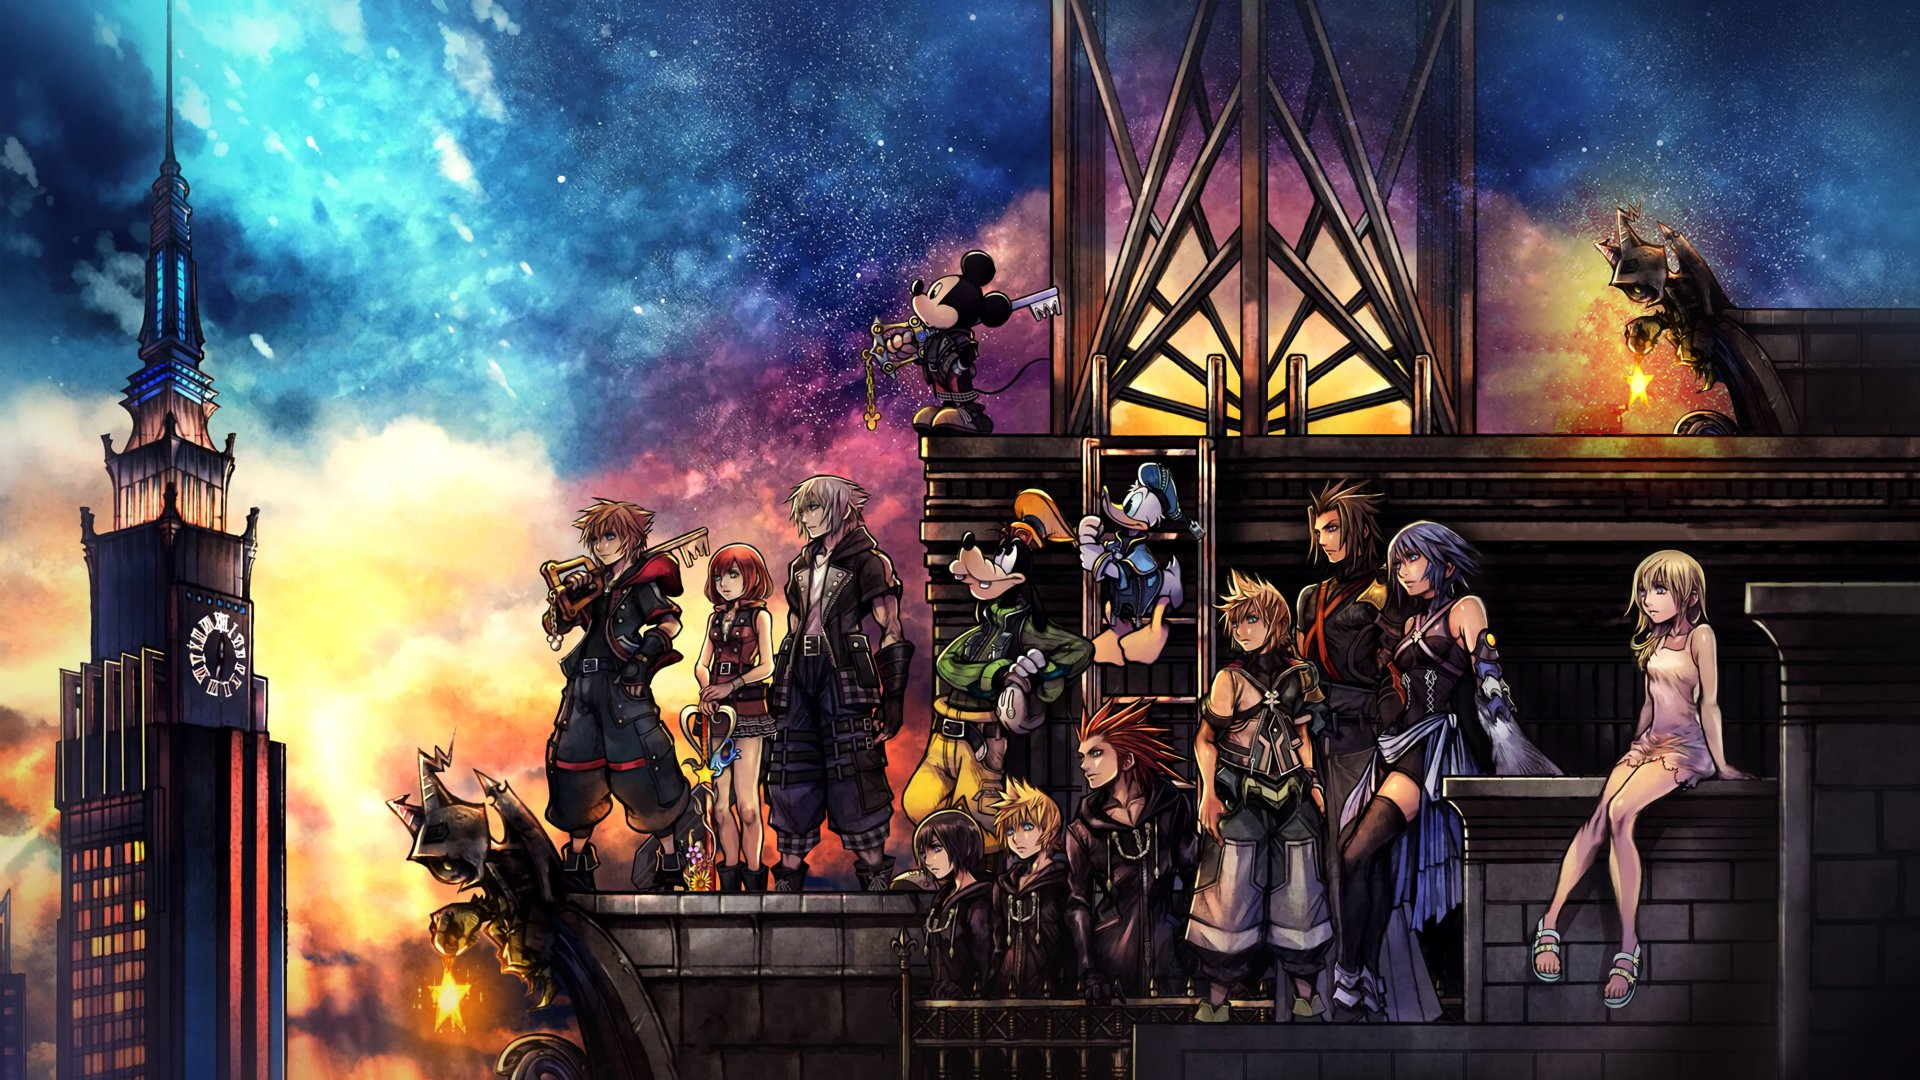 30 Kingdom Hearts Iii Hd Wallpapers Background Images